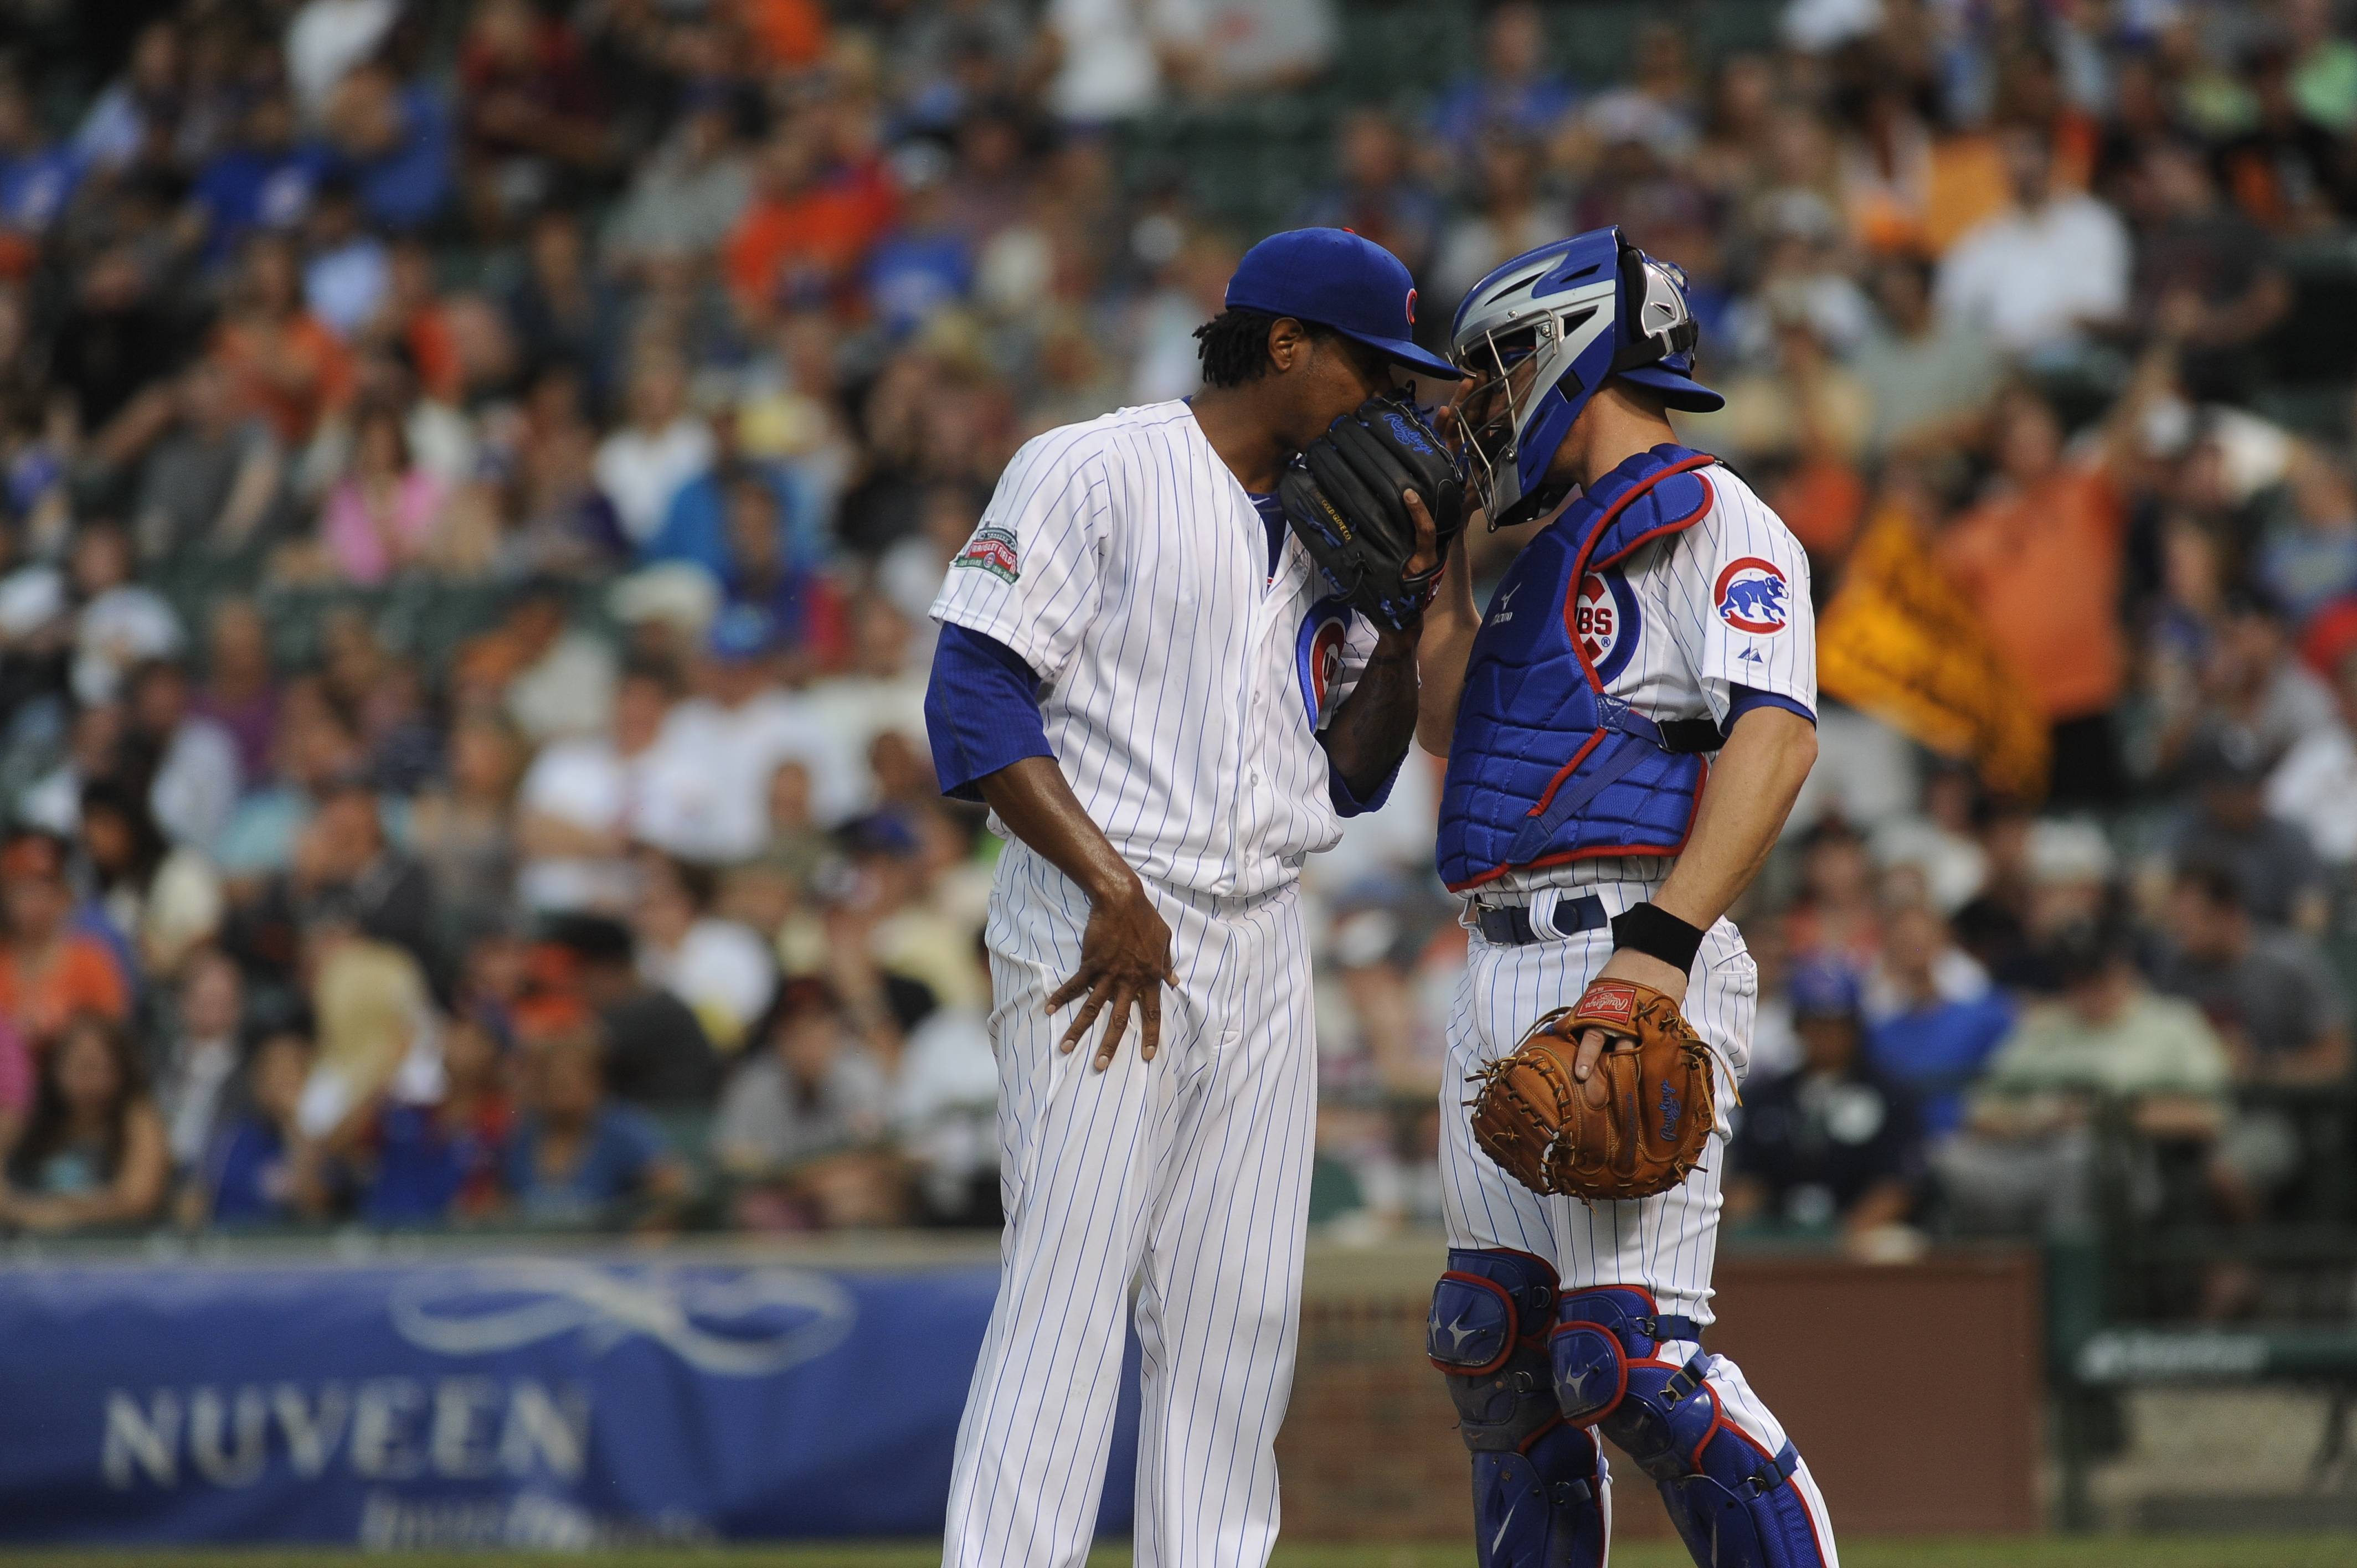 Chicago Cubs starting pitcher Edwin Jackson and Chicago Cubs catcher John Baker in a baseball game against the San Francisco Giants on Wednesday, Aug. 20, 2014, in Chicago. (AP Photo/Matt Marton)